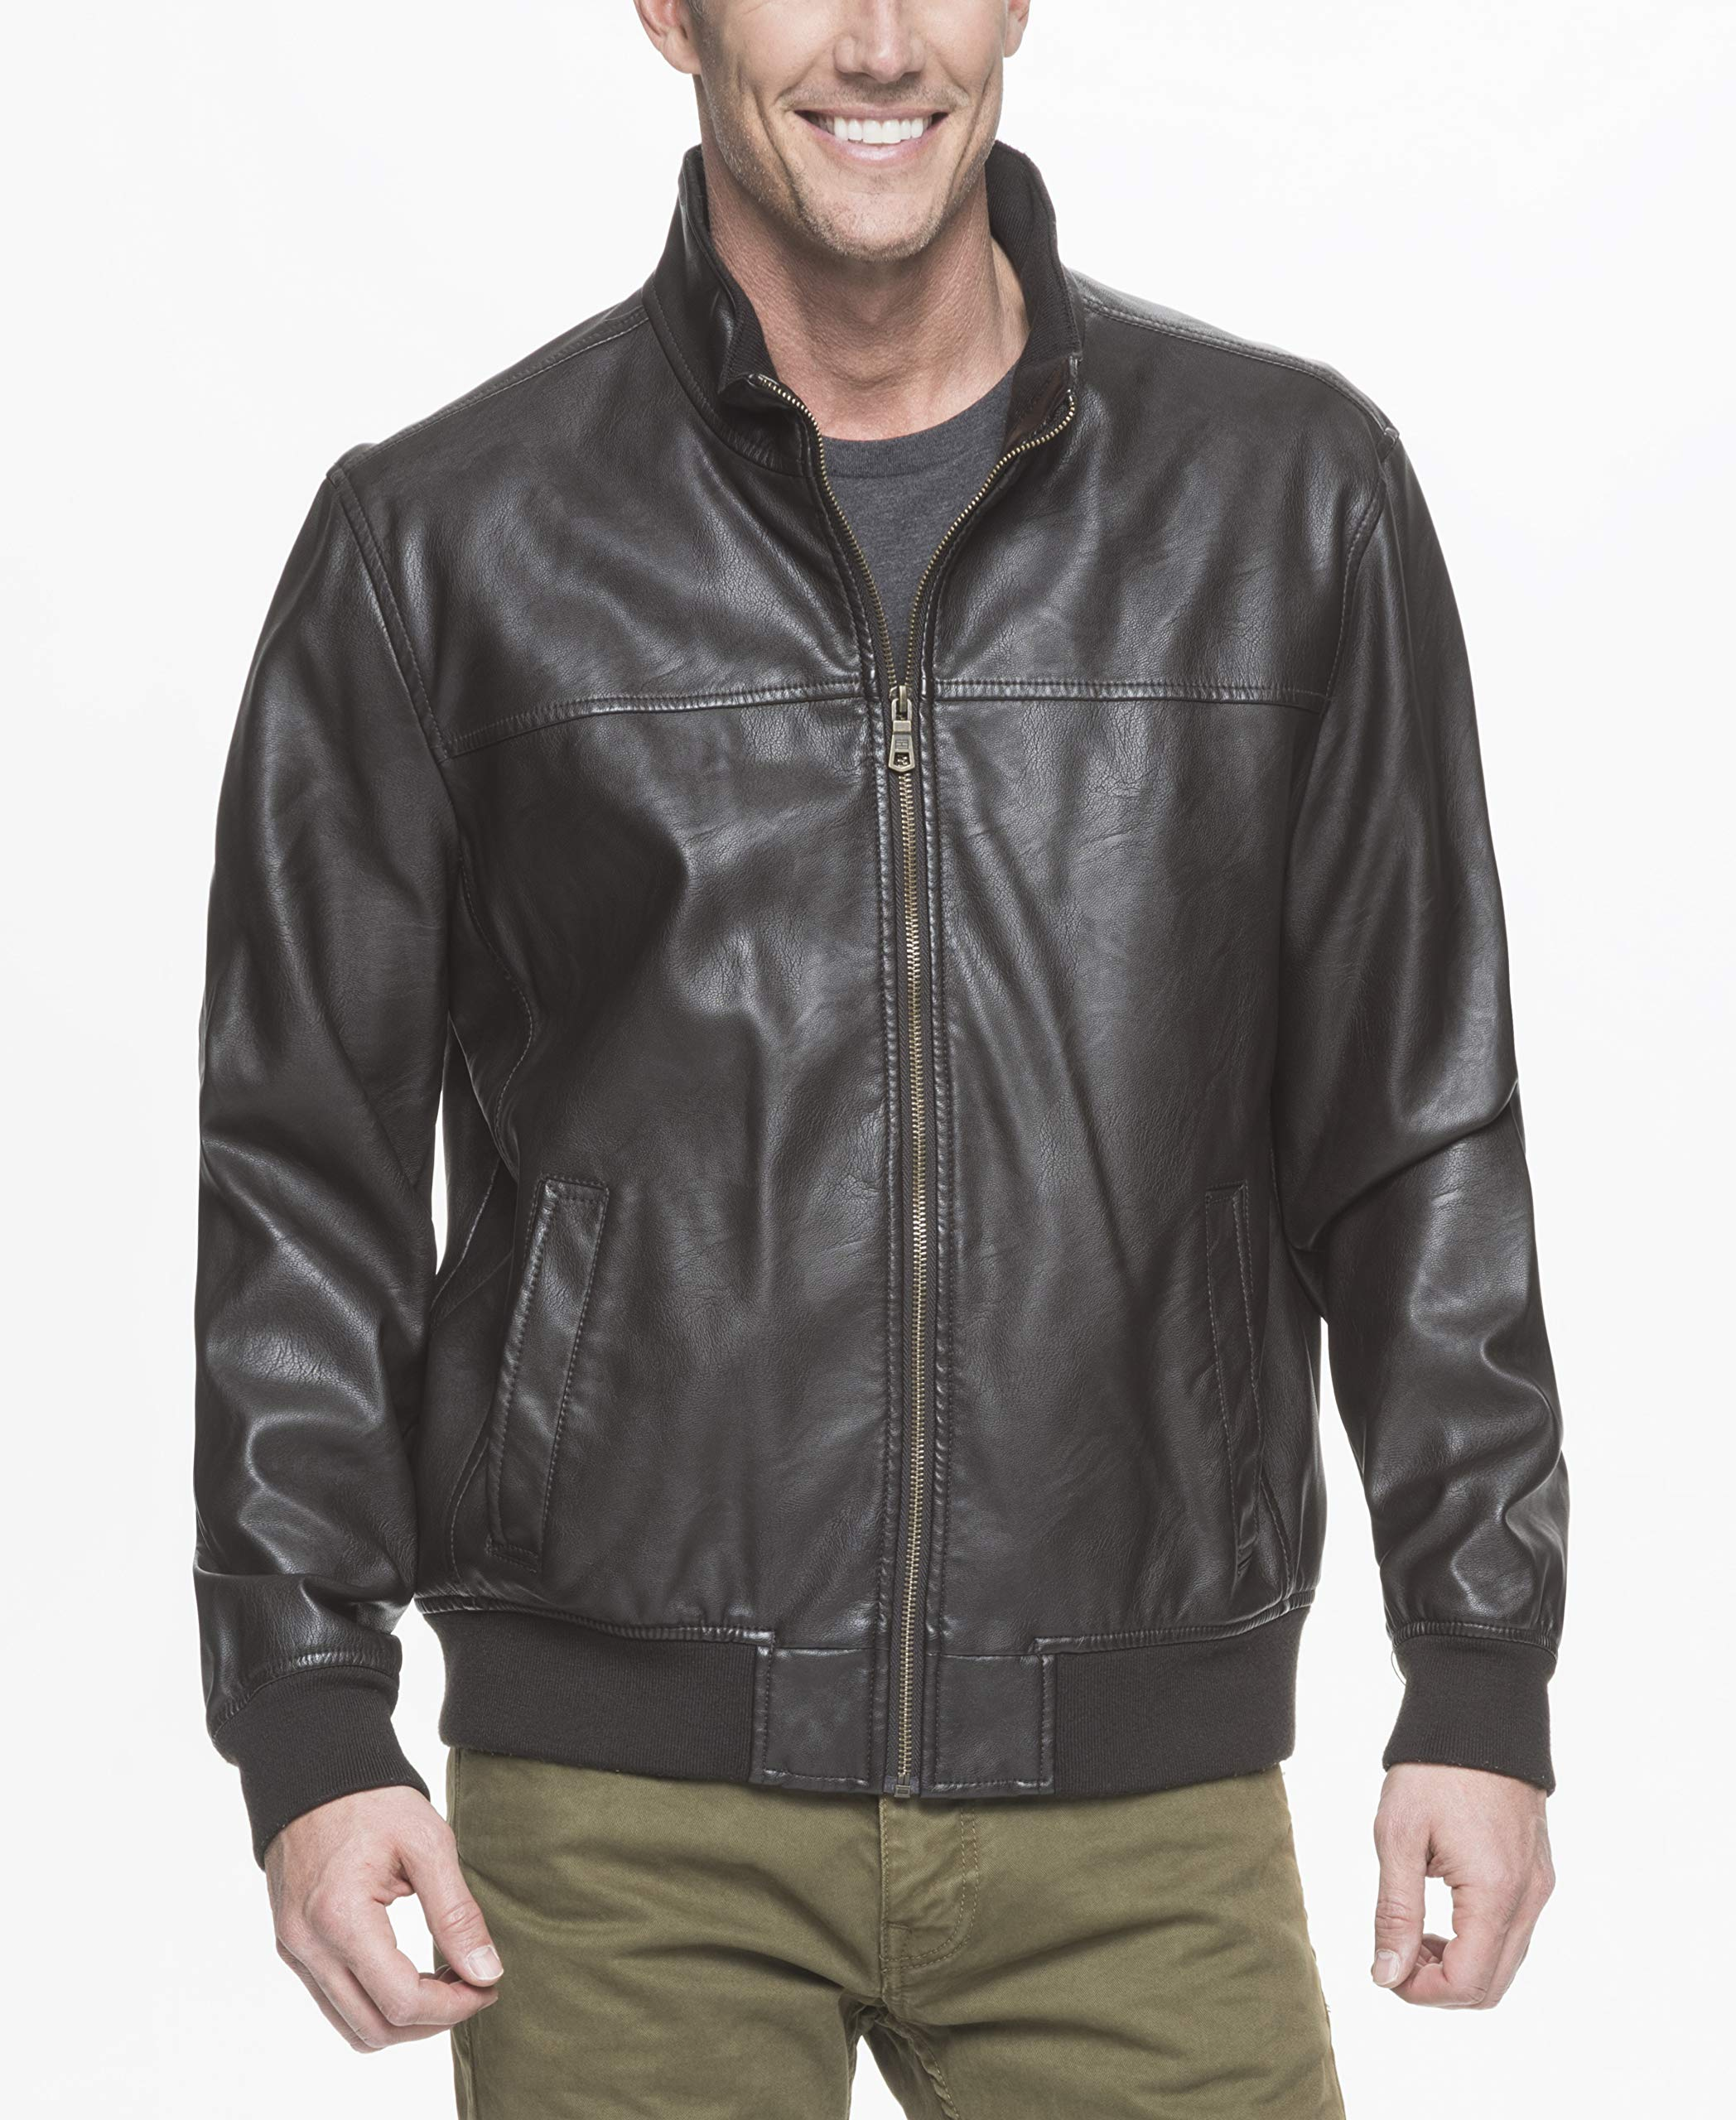 Tommy Hilfiger Men's Smooth Lamb Faux Leather Unfilled Bomber Jacket, Dark Brown, XXL by Tommy Hilfiger